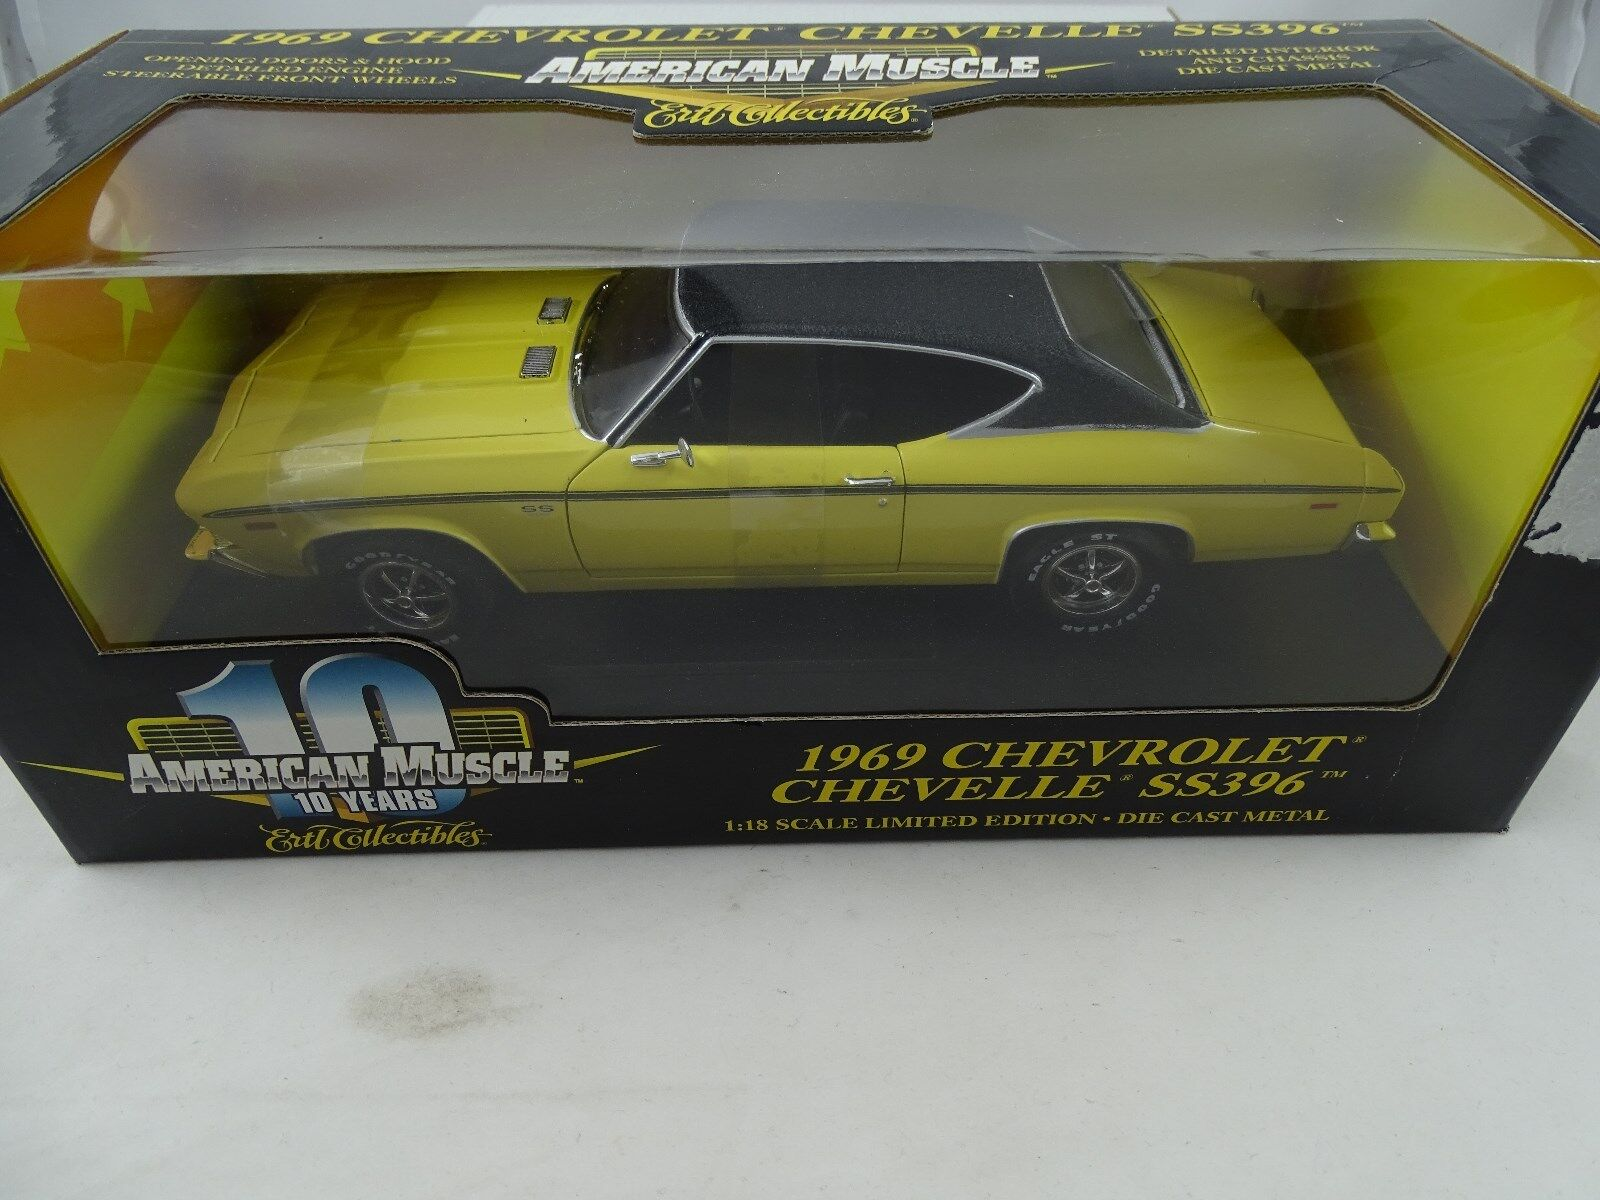 1 18 ERTL - 1969 Chevrolet Chevelle SS396 Yellow-Lmtd. EDT. - Rarity §